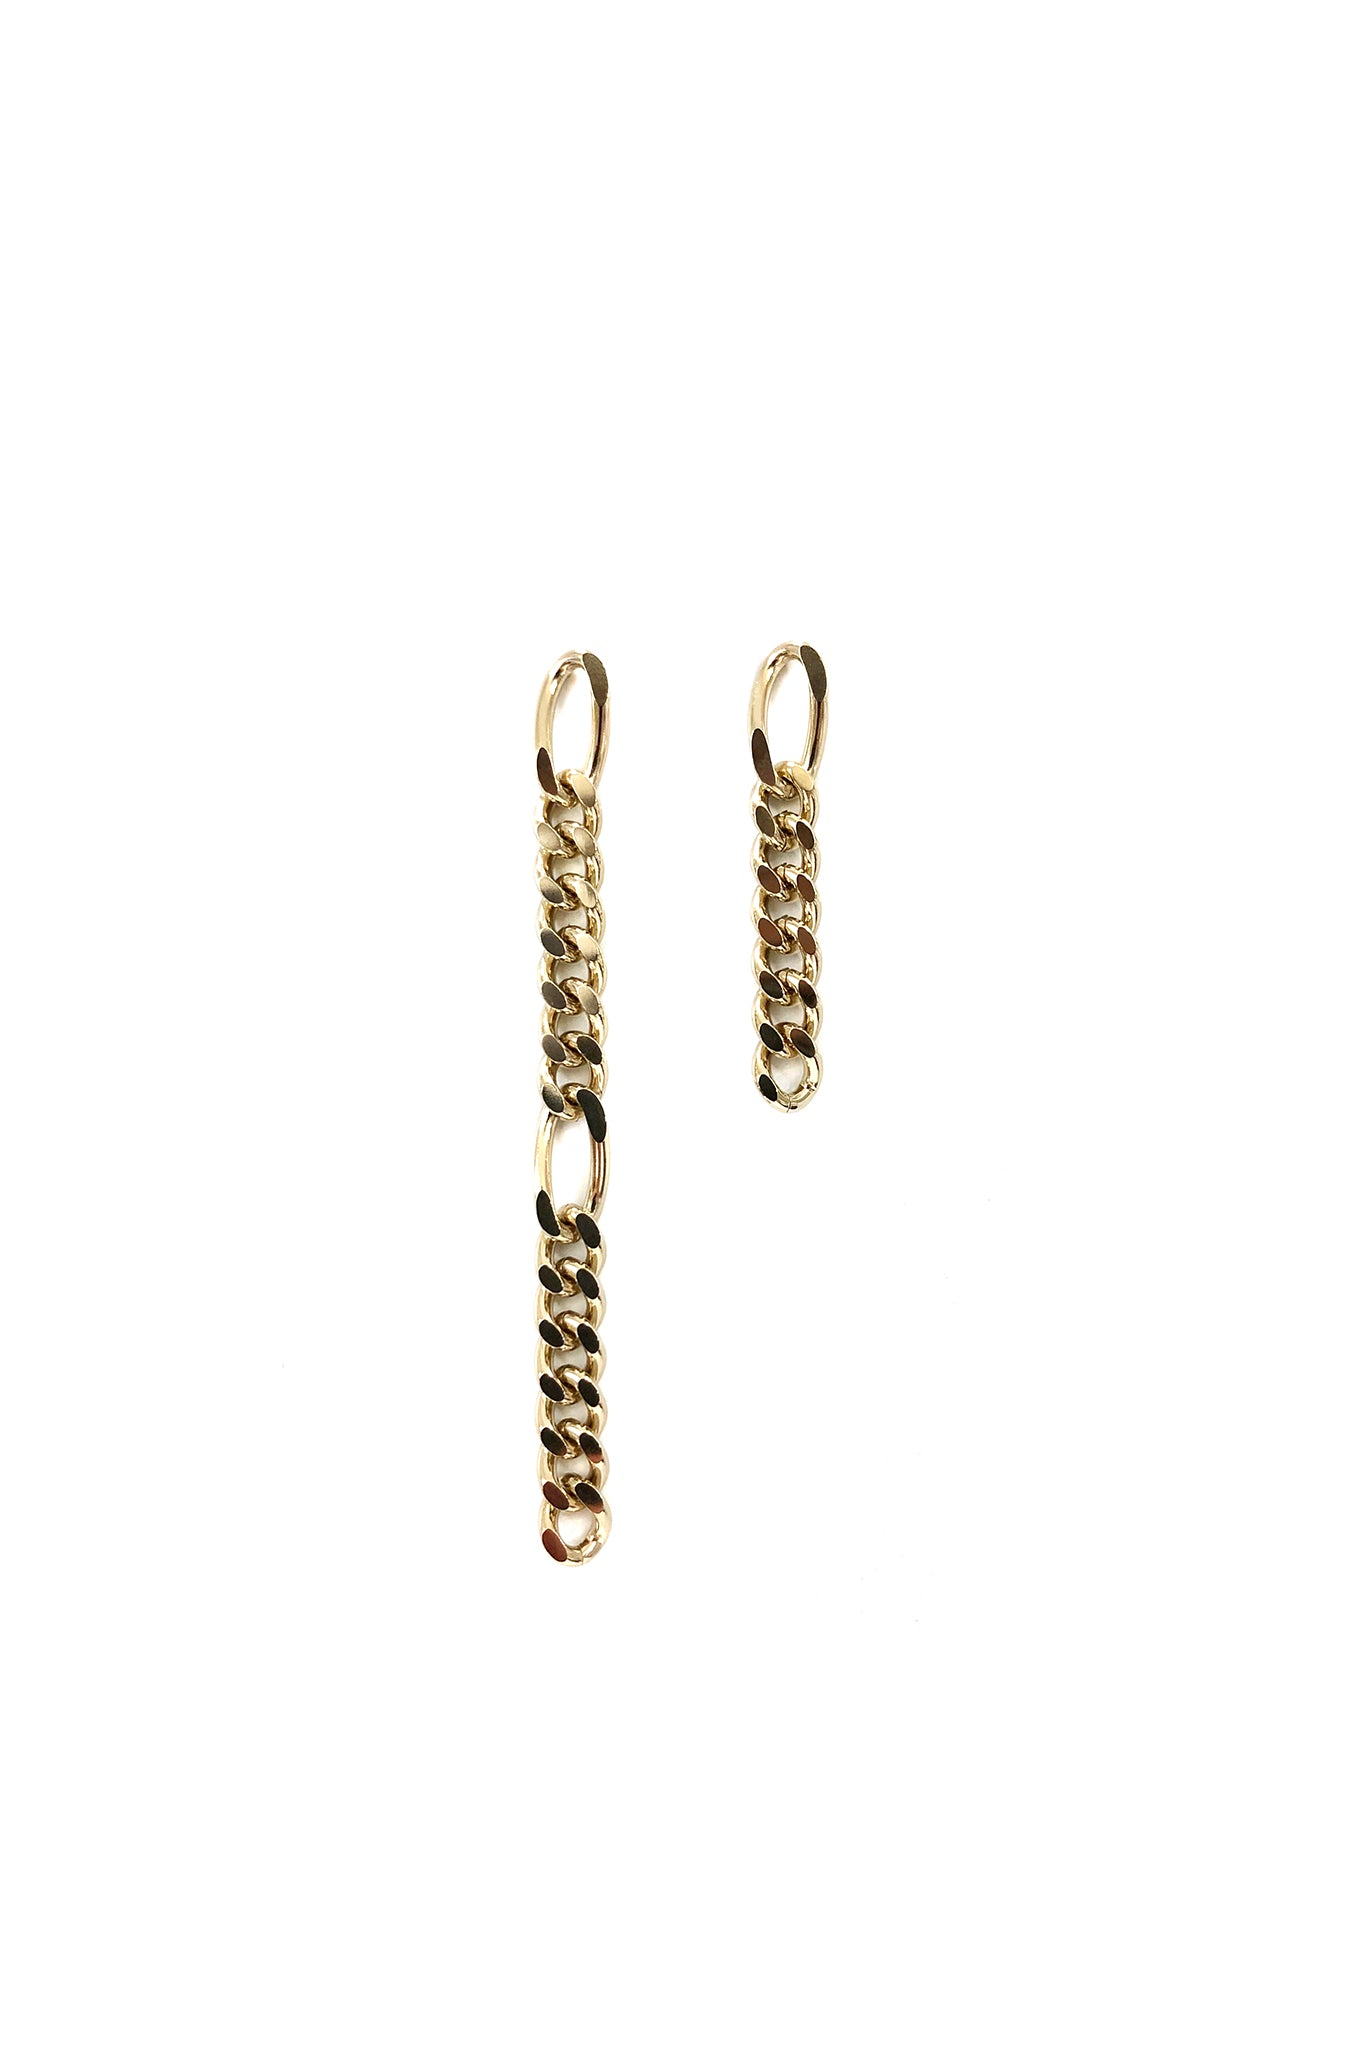 Justine Clenquet Kim Earrings, Gold